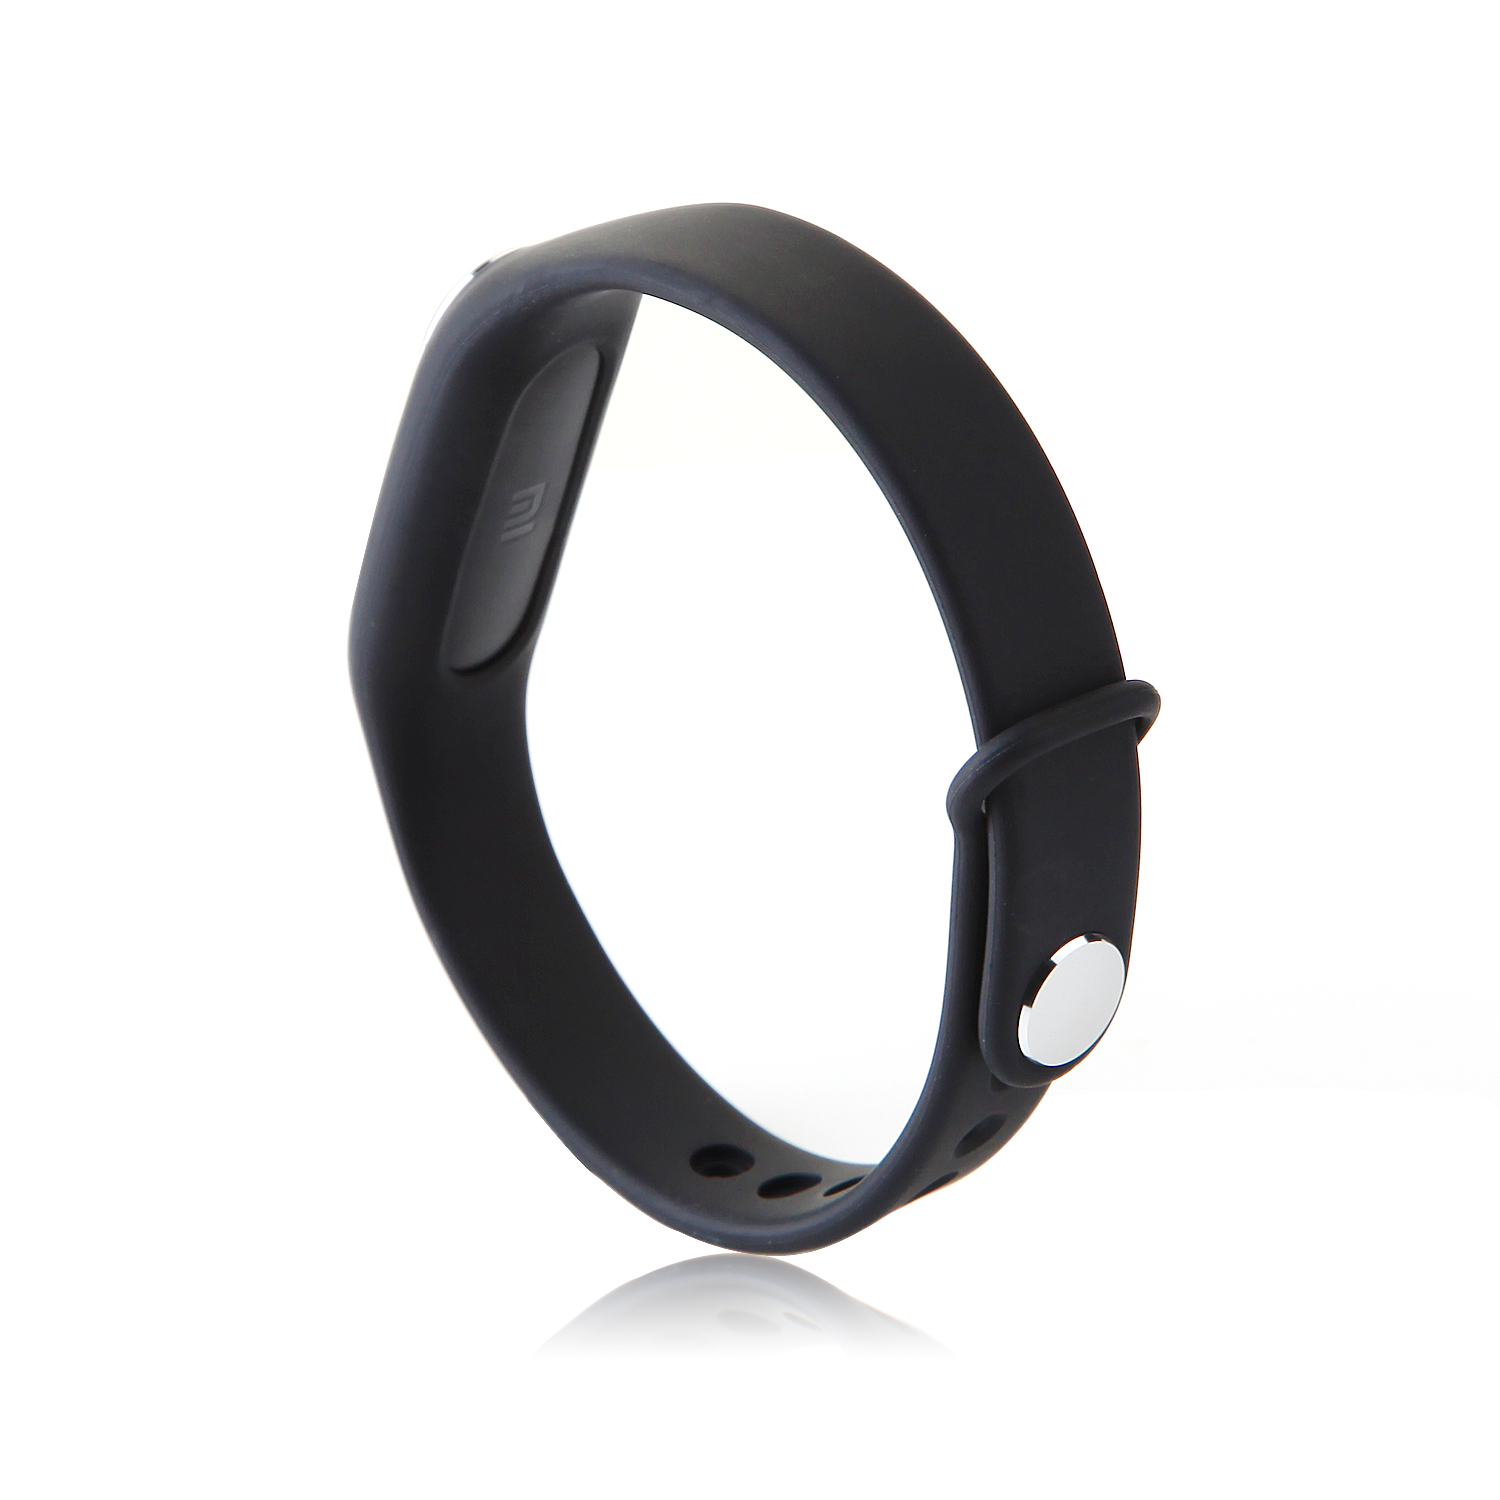 Original Xiaomi Mi Band Xiaomi Wristband IP67 Bluetooth Bracelet with White LED Light